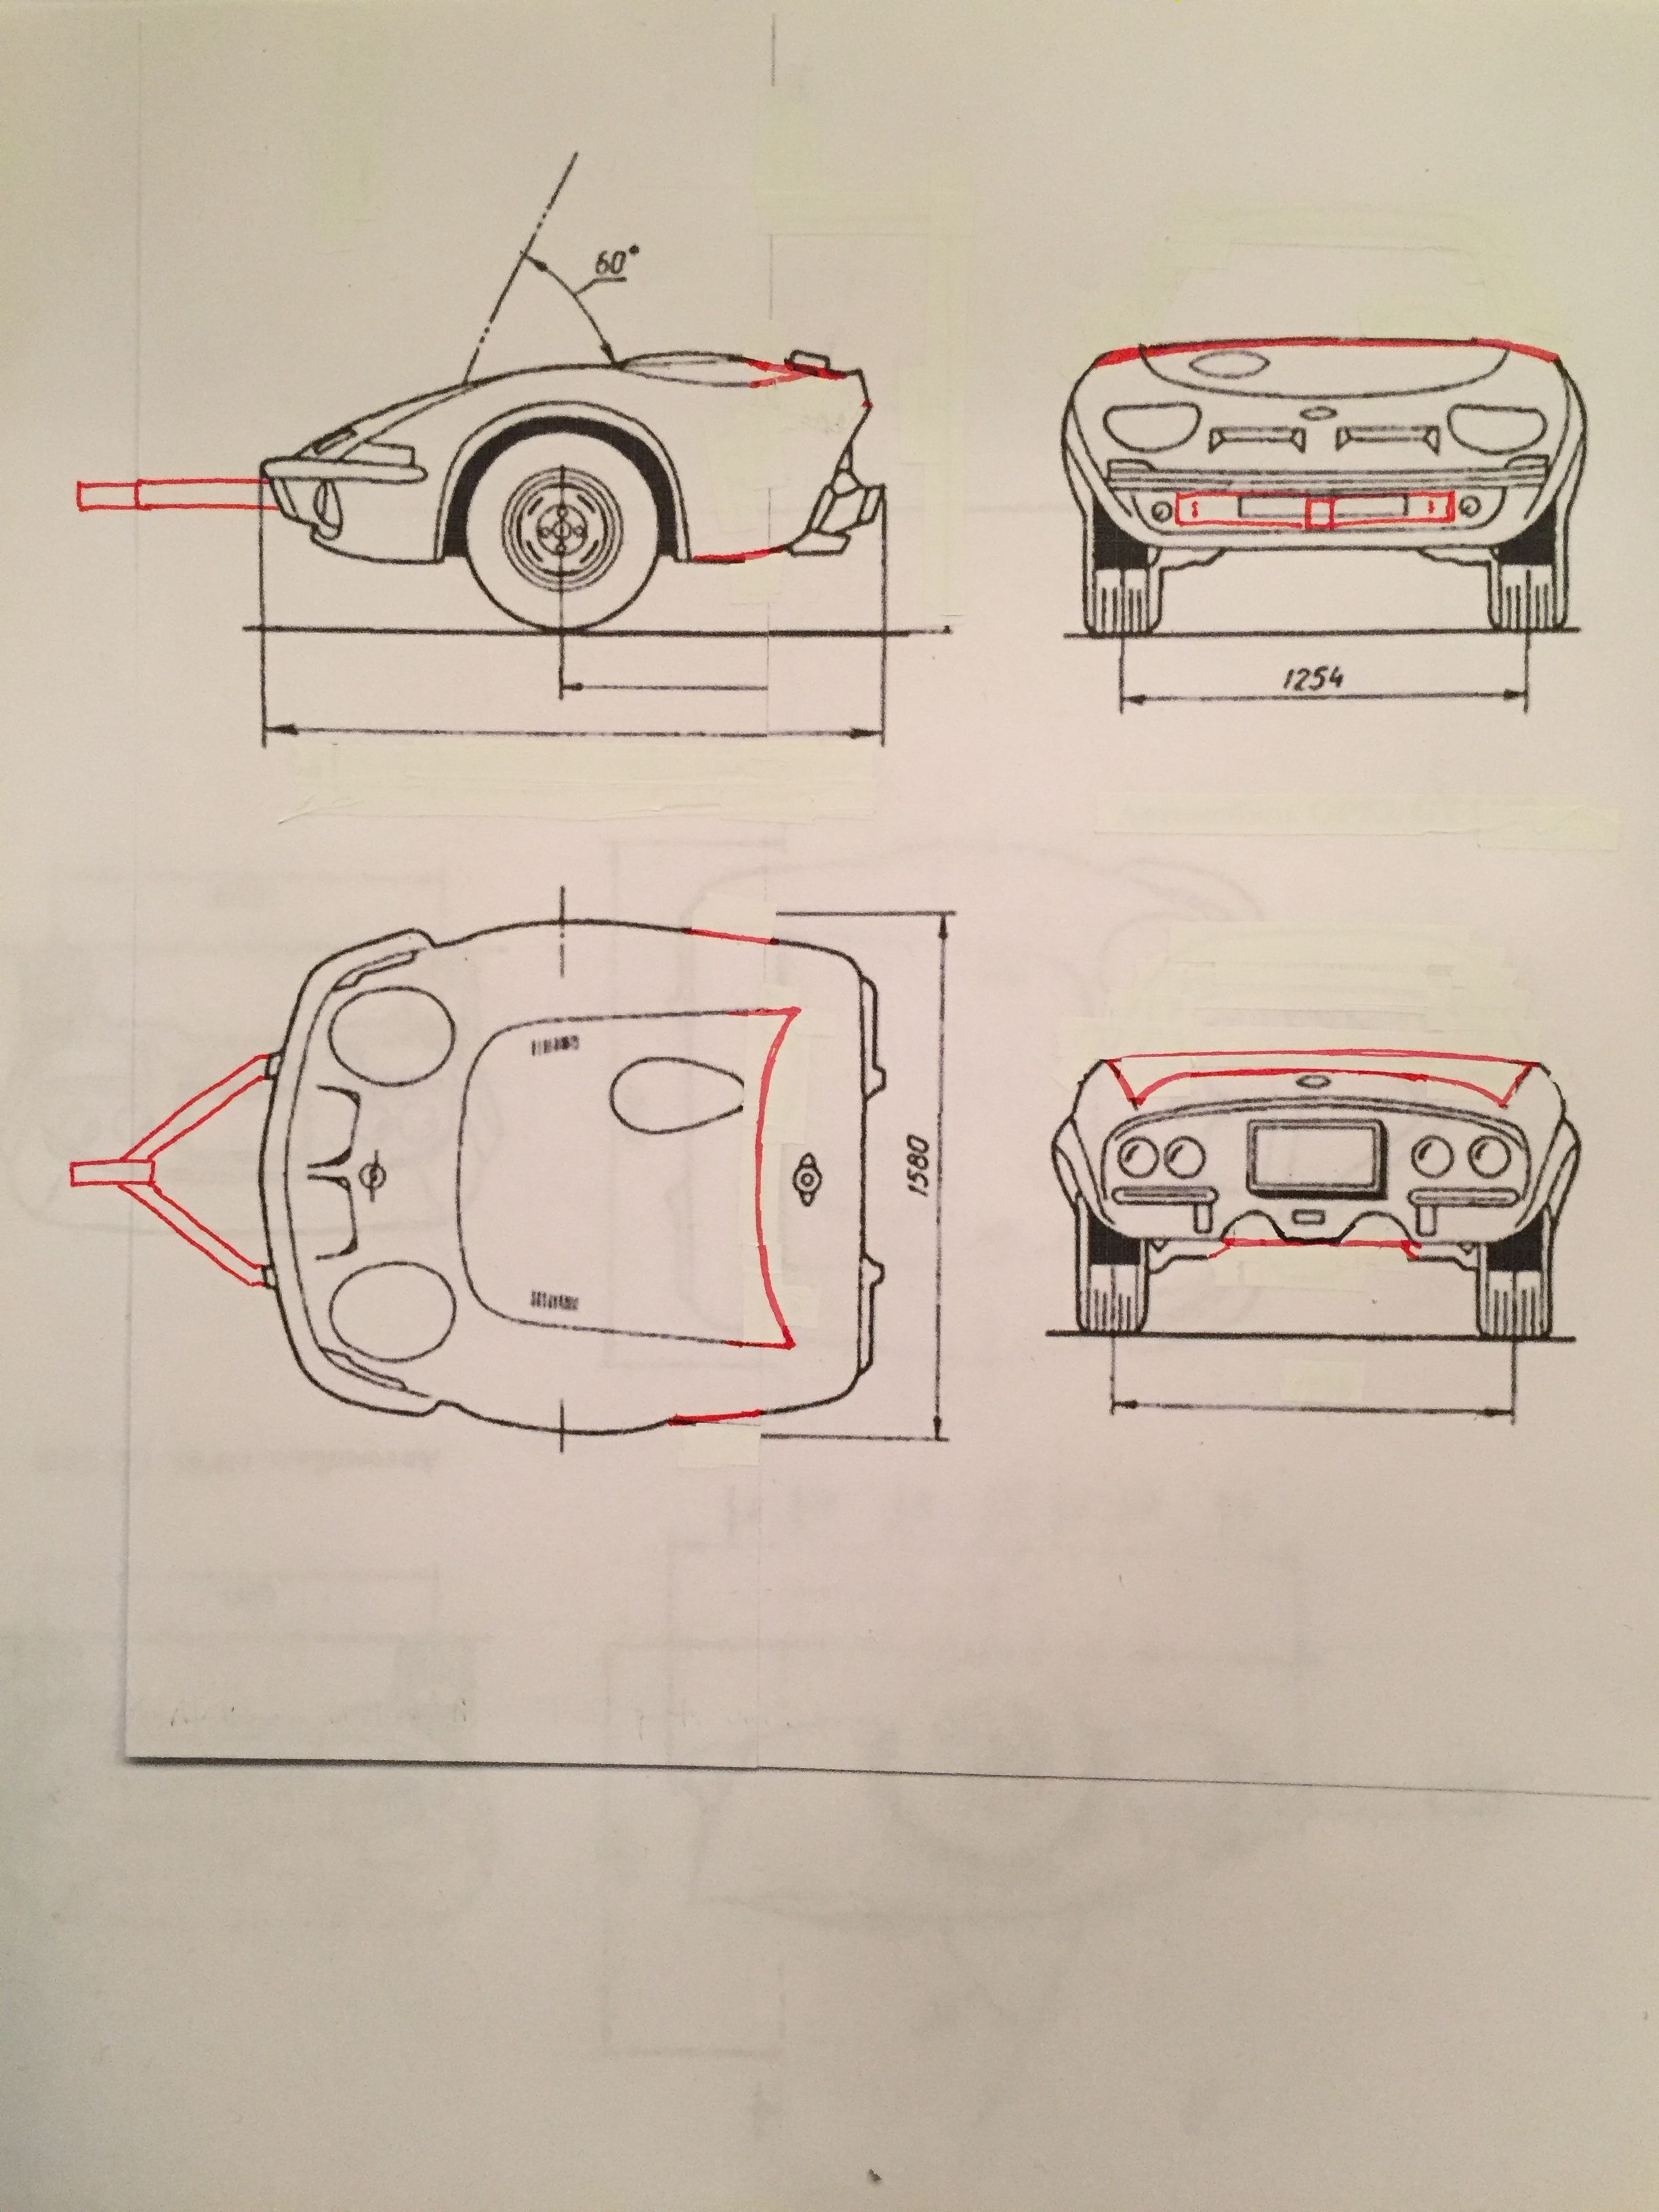 hight resolution of my idea for an opel gt trailer use the front axle cut at the